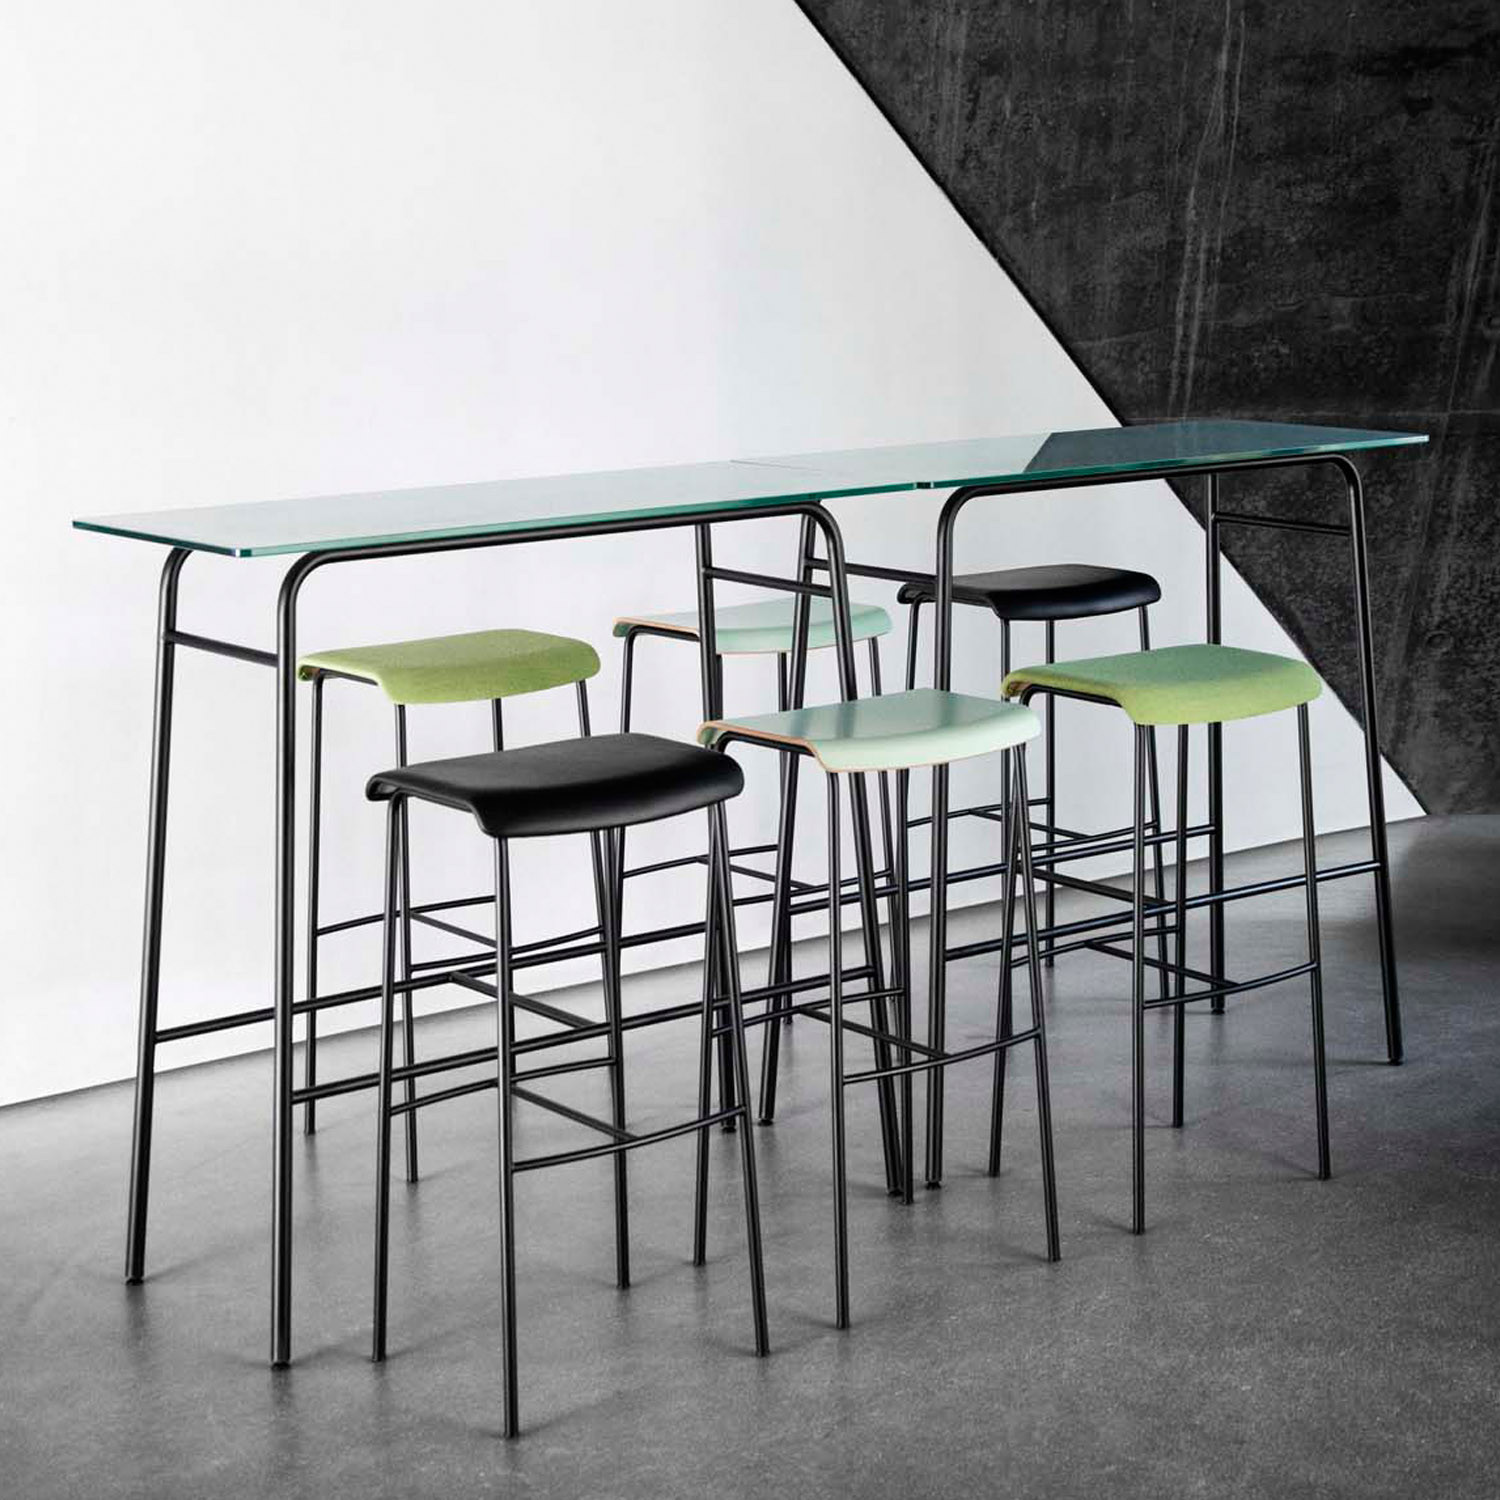 Pause Bar Stools & Table